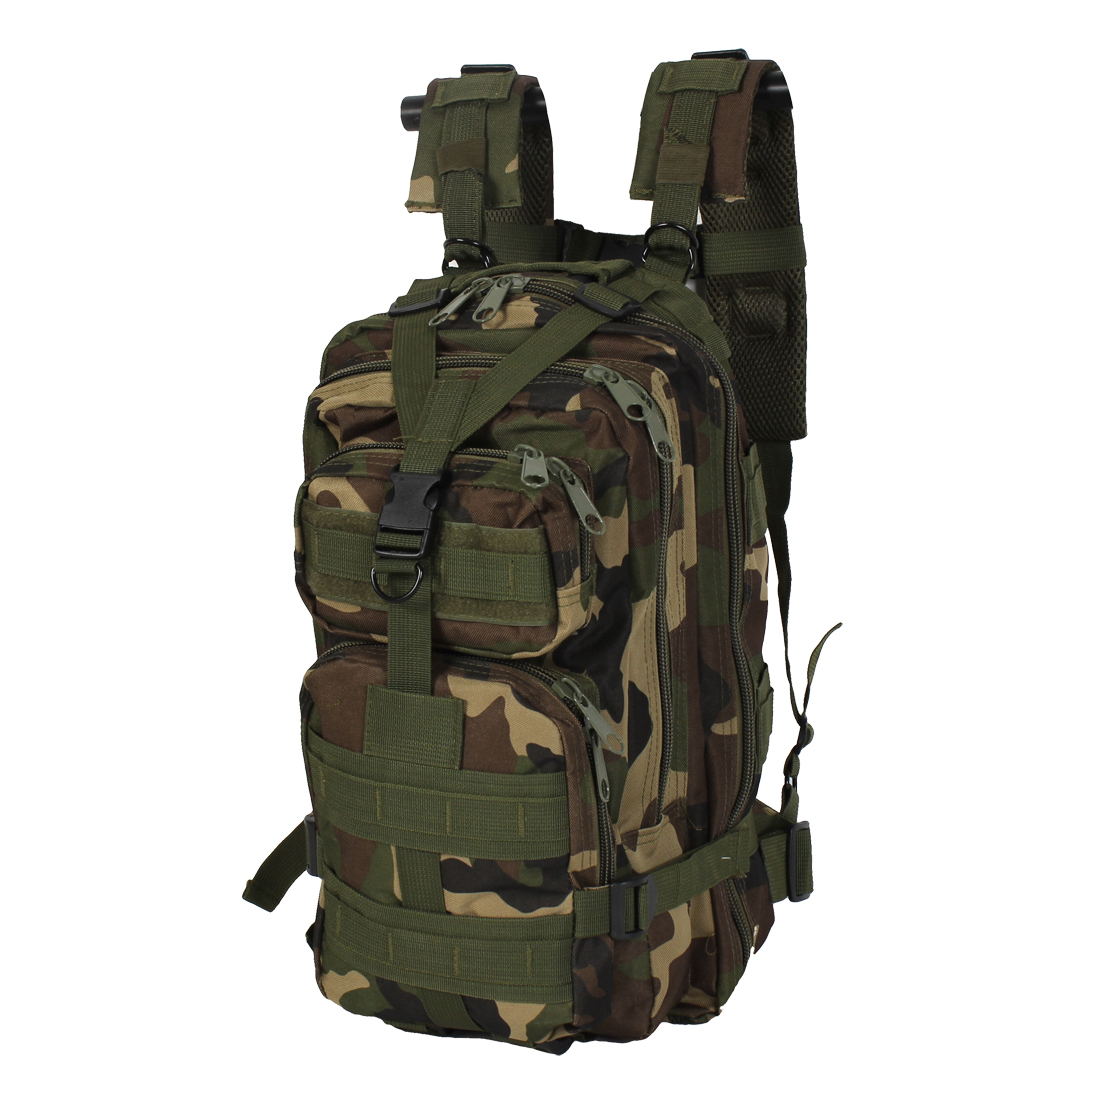 Military Tactical Rucksack Oxford Cloth Waterproof Outdoor Hiking Backpack